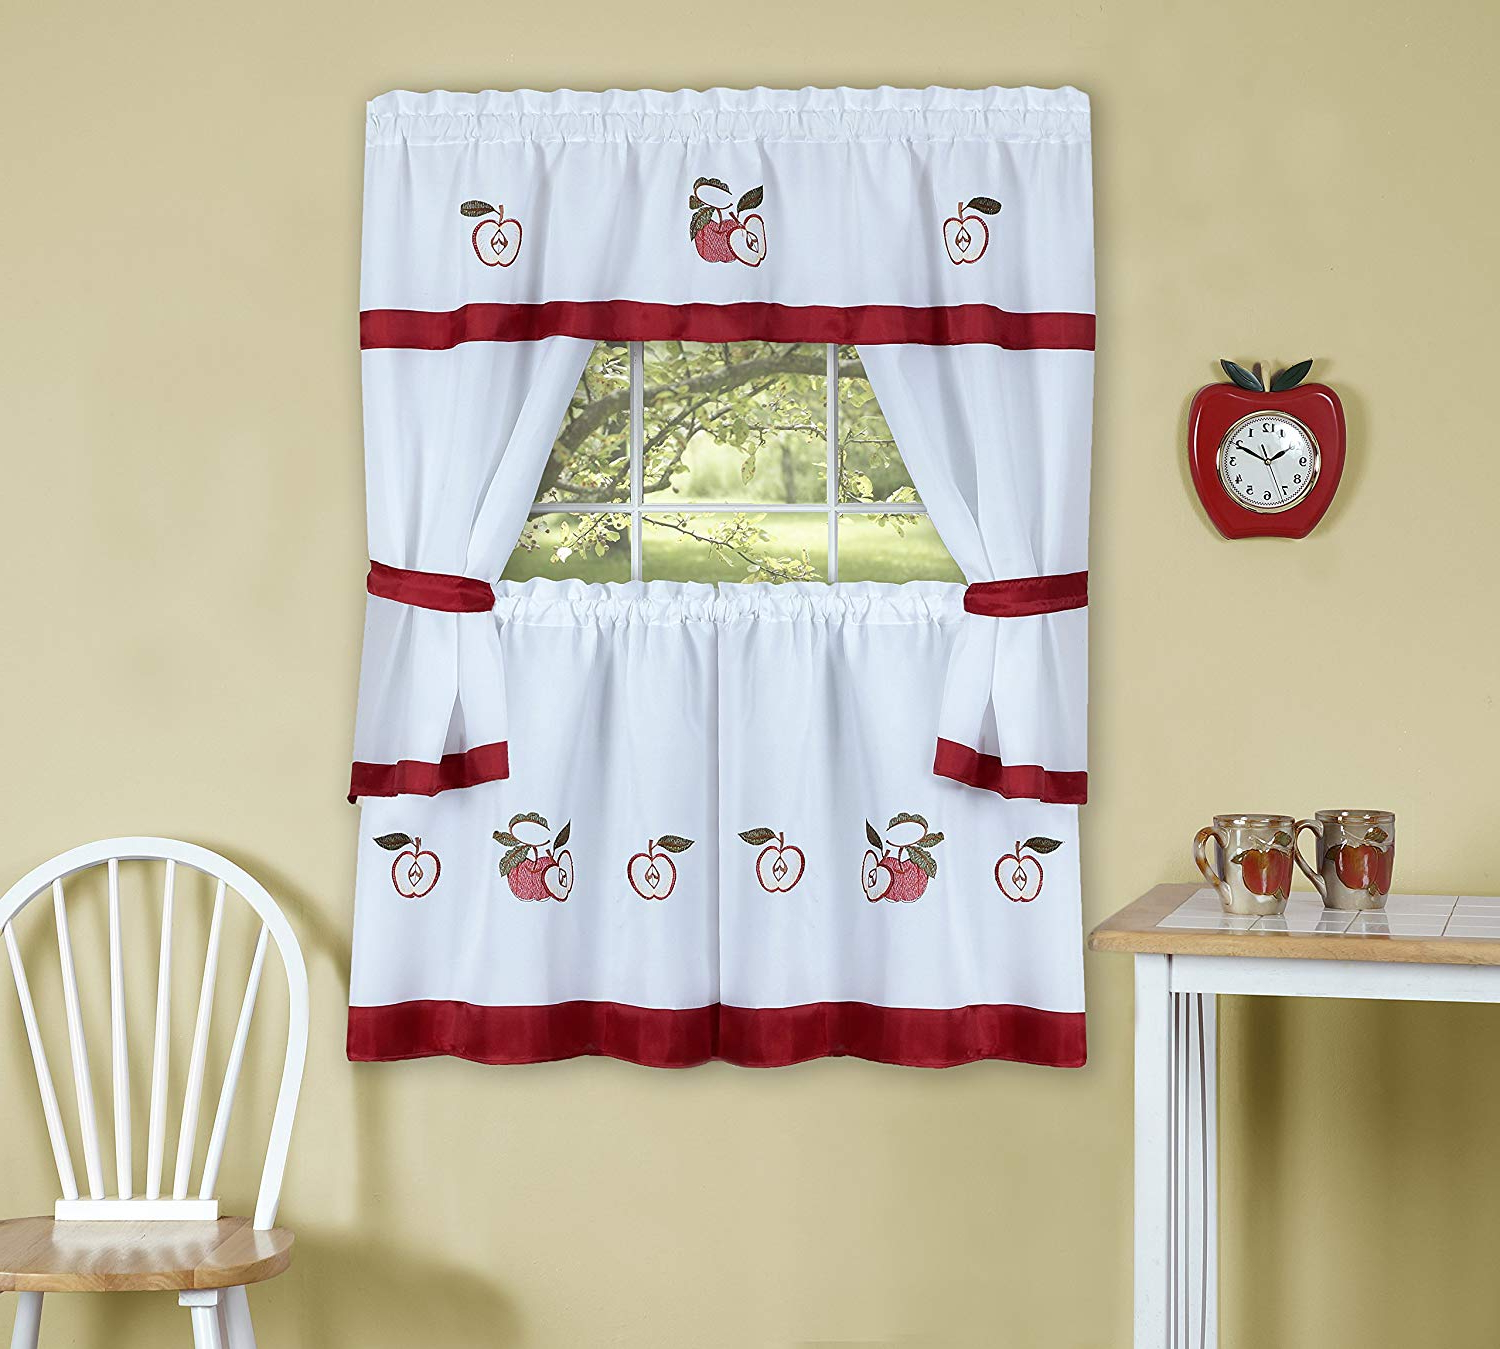 "Widely Used 5 Piece Burgundy Embroidered Cabernet Kitchen Curtain Sets With Achim Home Furnishings Gala Embellished Cottage Set With Tier Pair, 58 36"", Red (View 13 of 20)"